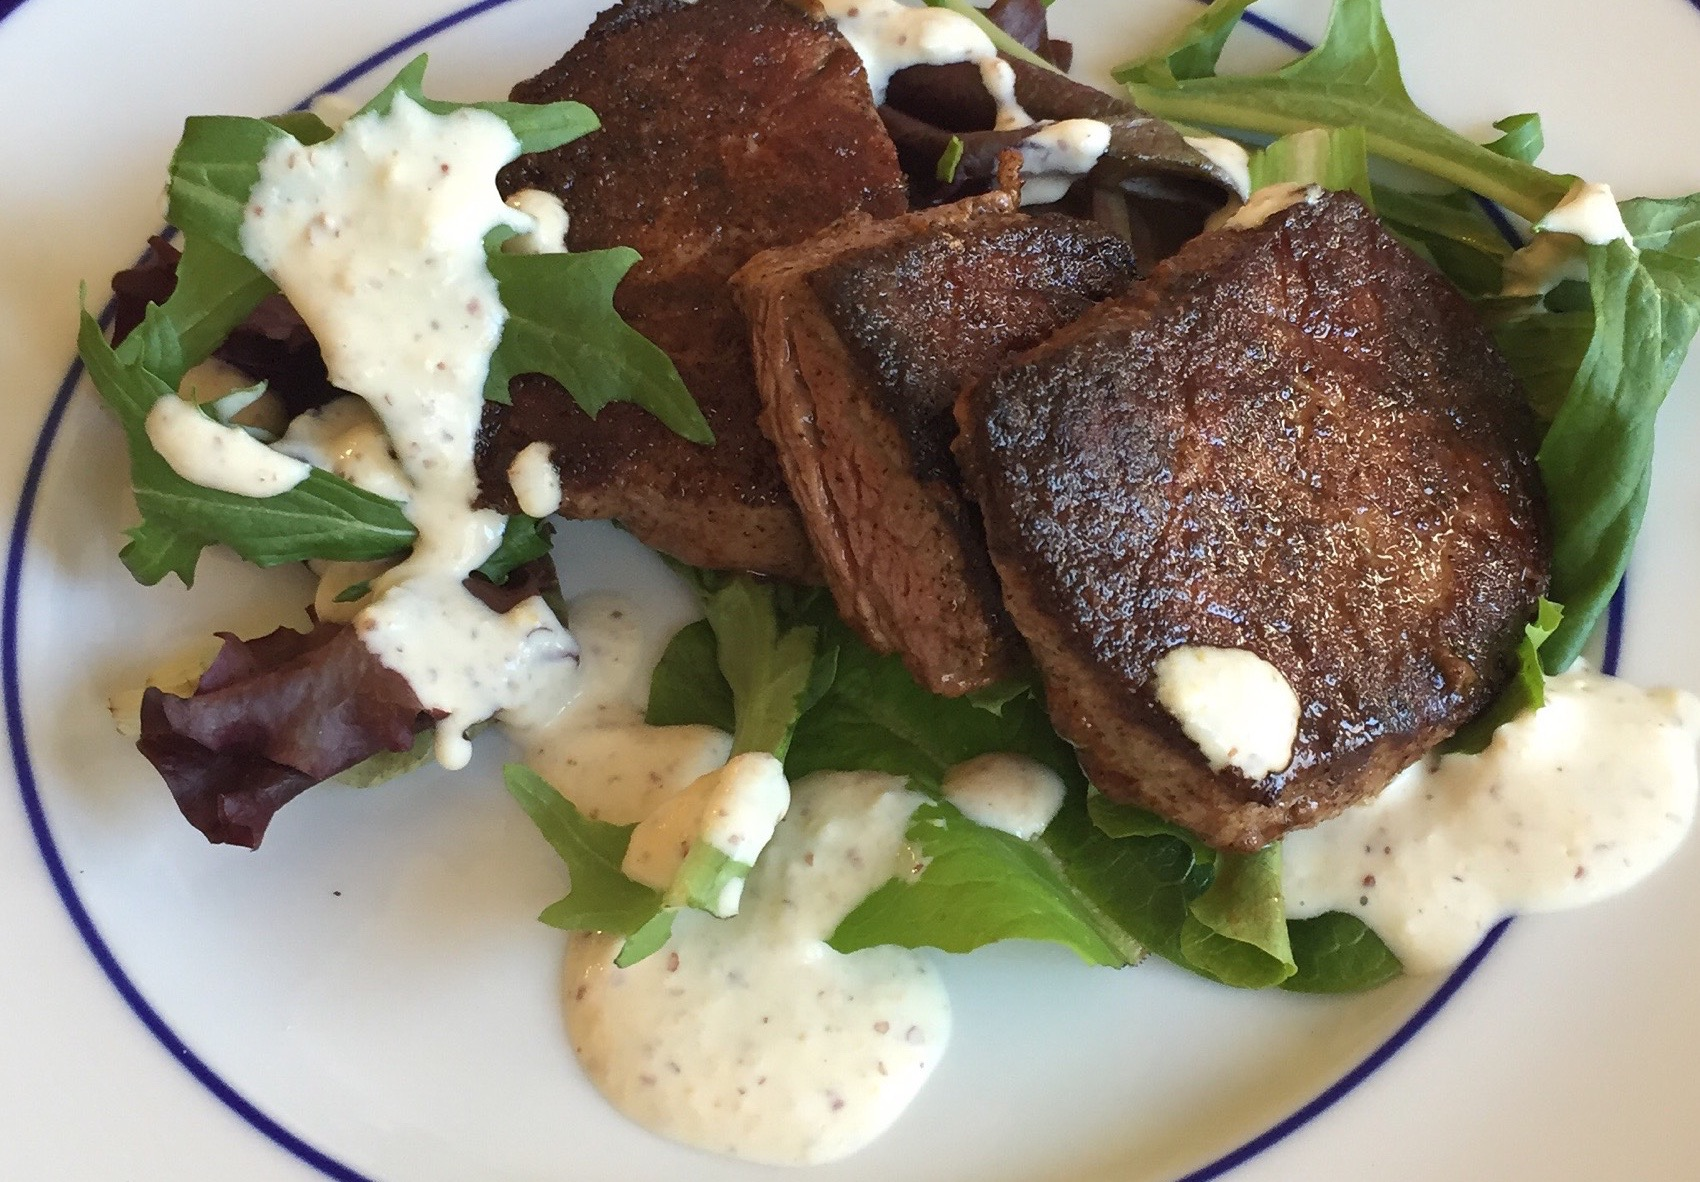 Seared Baja Beef Tenderloin with Spring Greens and Parmesan, Mustard and Horseradish Sauce